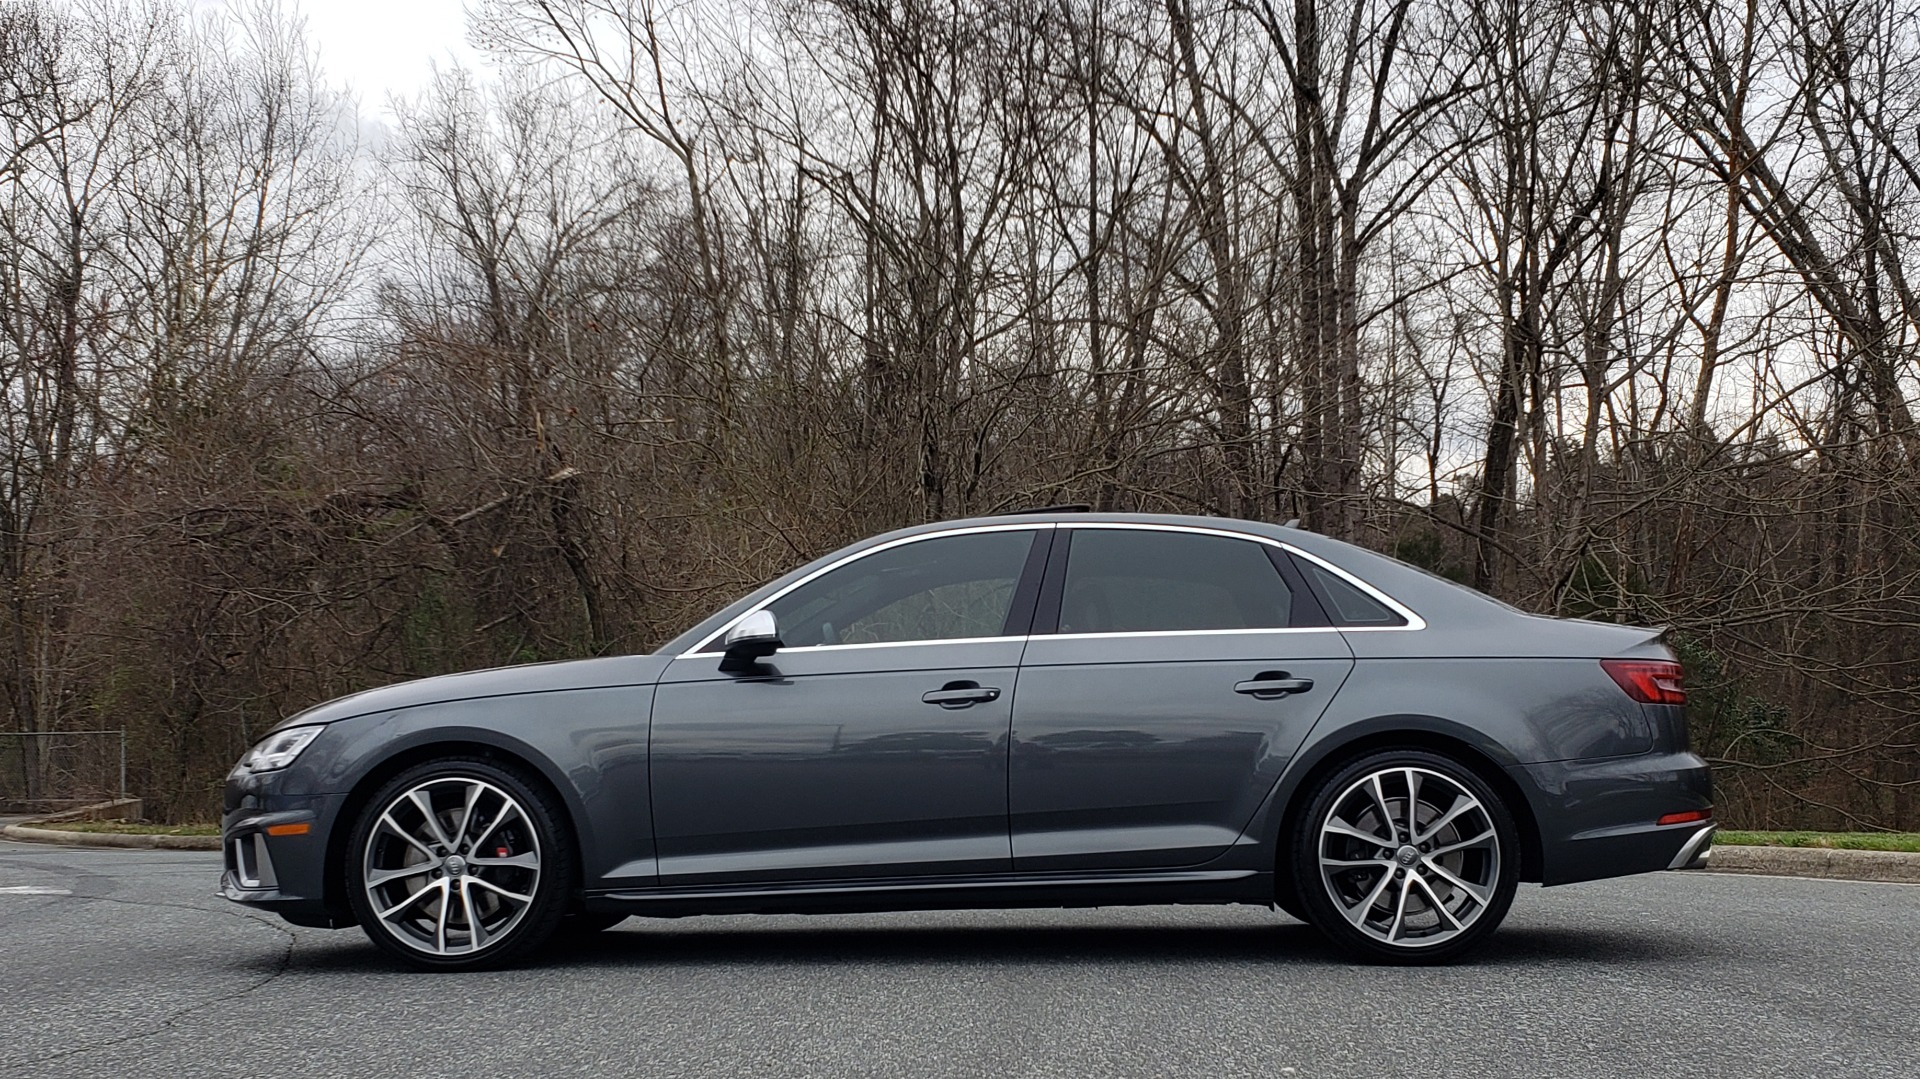 Used 2019 Audi S4 PREMIUM PLUS / AWD / NAV / SUNROOF / B&O SOUND / REARVIEW for sale Sold at Formula Imports in Charlotte NC 28227 2